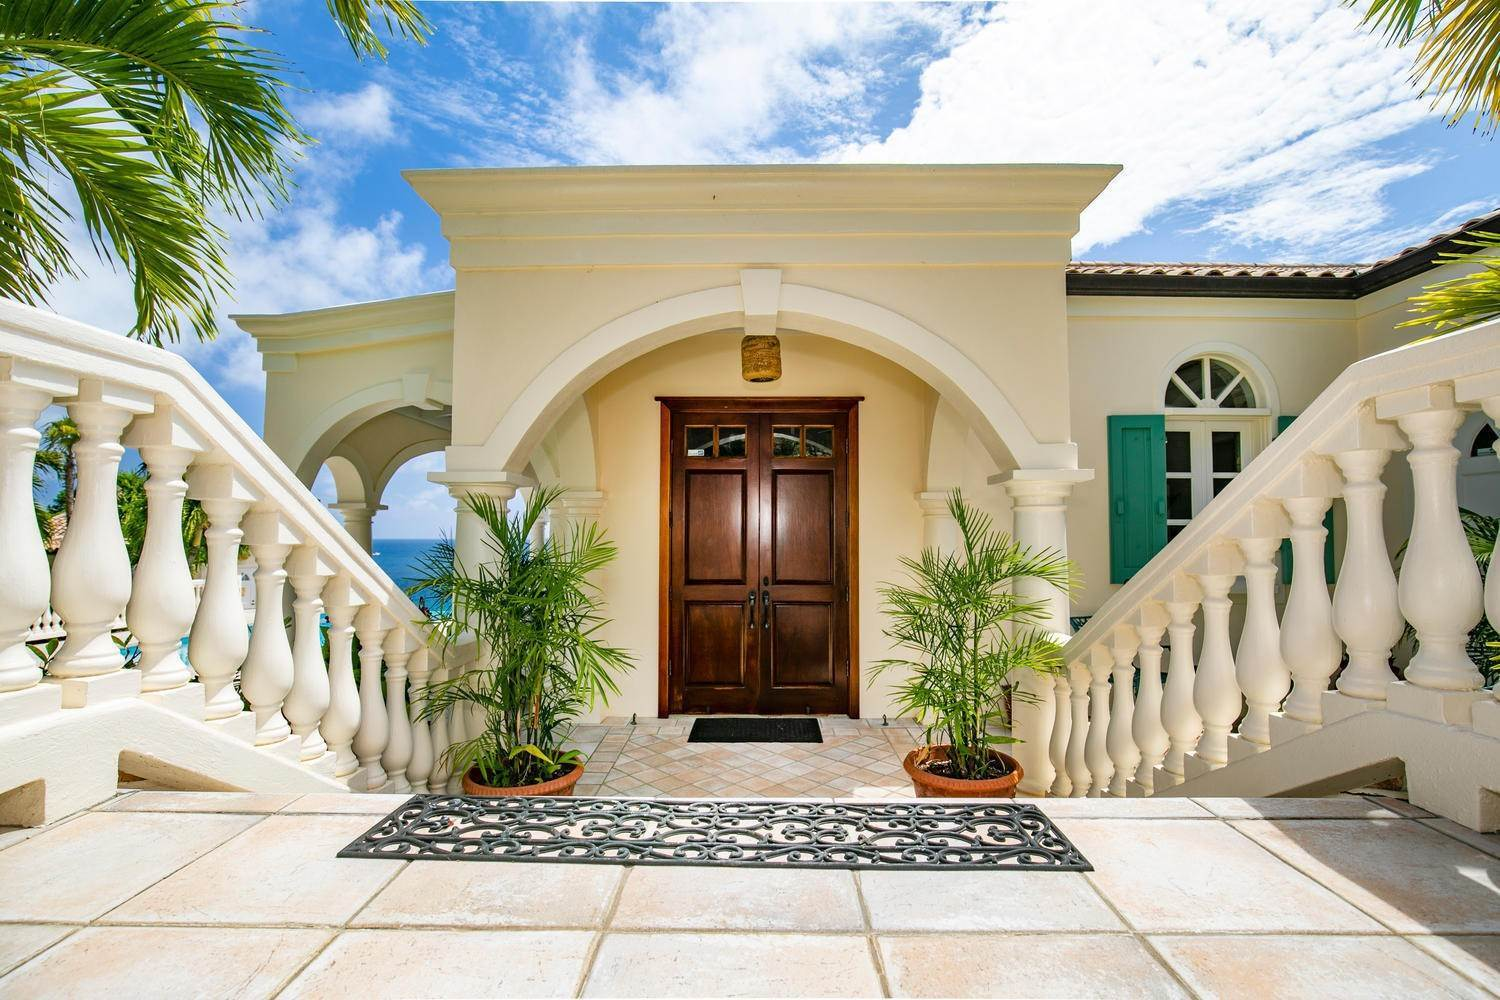 27. Single Family Home per Vendita alle ore 9-4 Con. Contant Cruz Bay St John, Virgin Islands,00830 Isole Vergini Americane